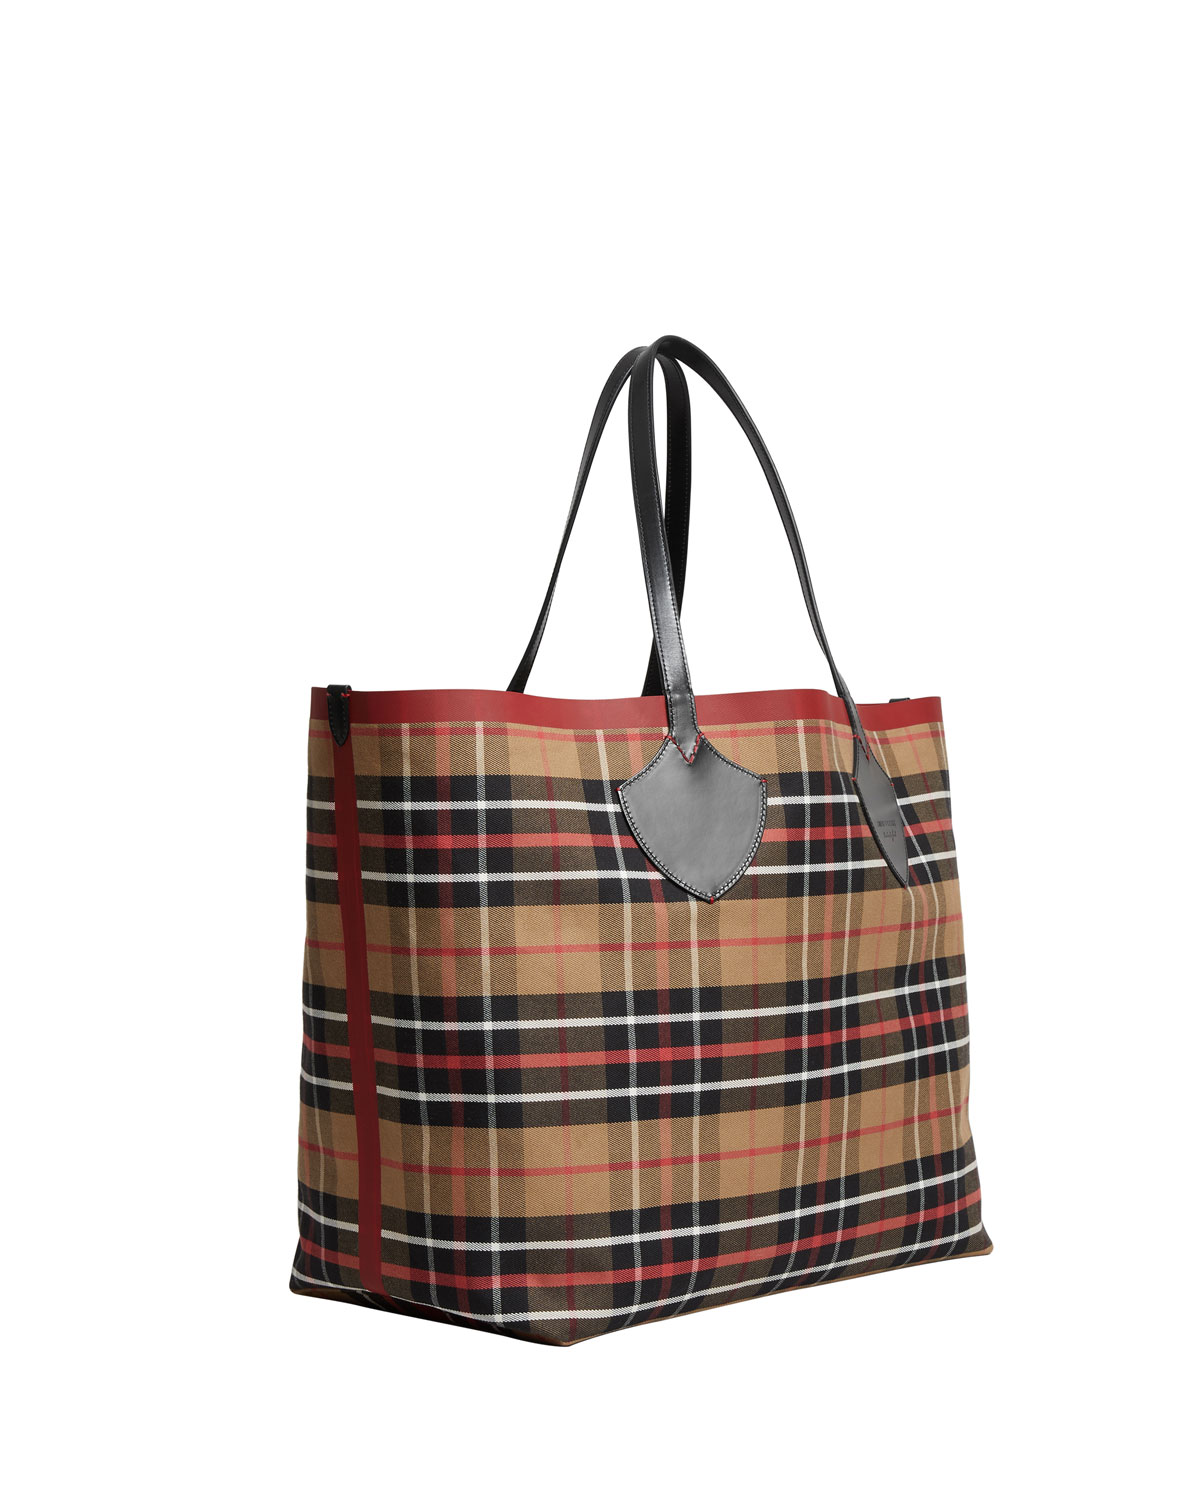 Sale Online Shopping Tartan Reversible Over Sized Tote - Only One Size / Multi Burberry Clearance Enjoy VKDF398